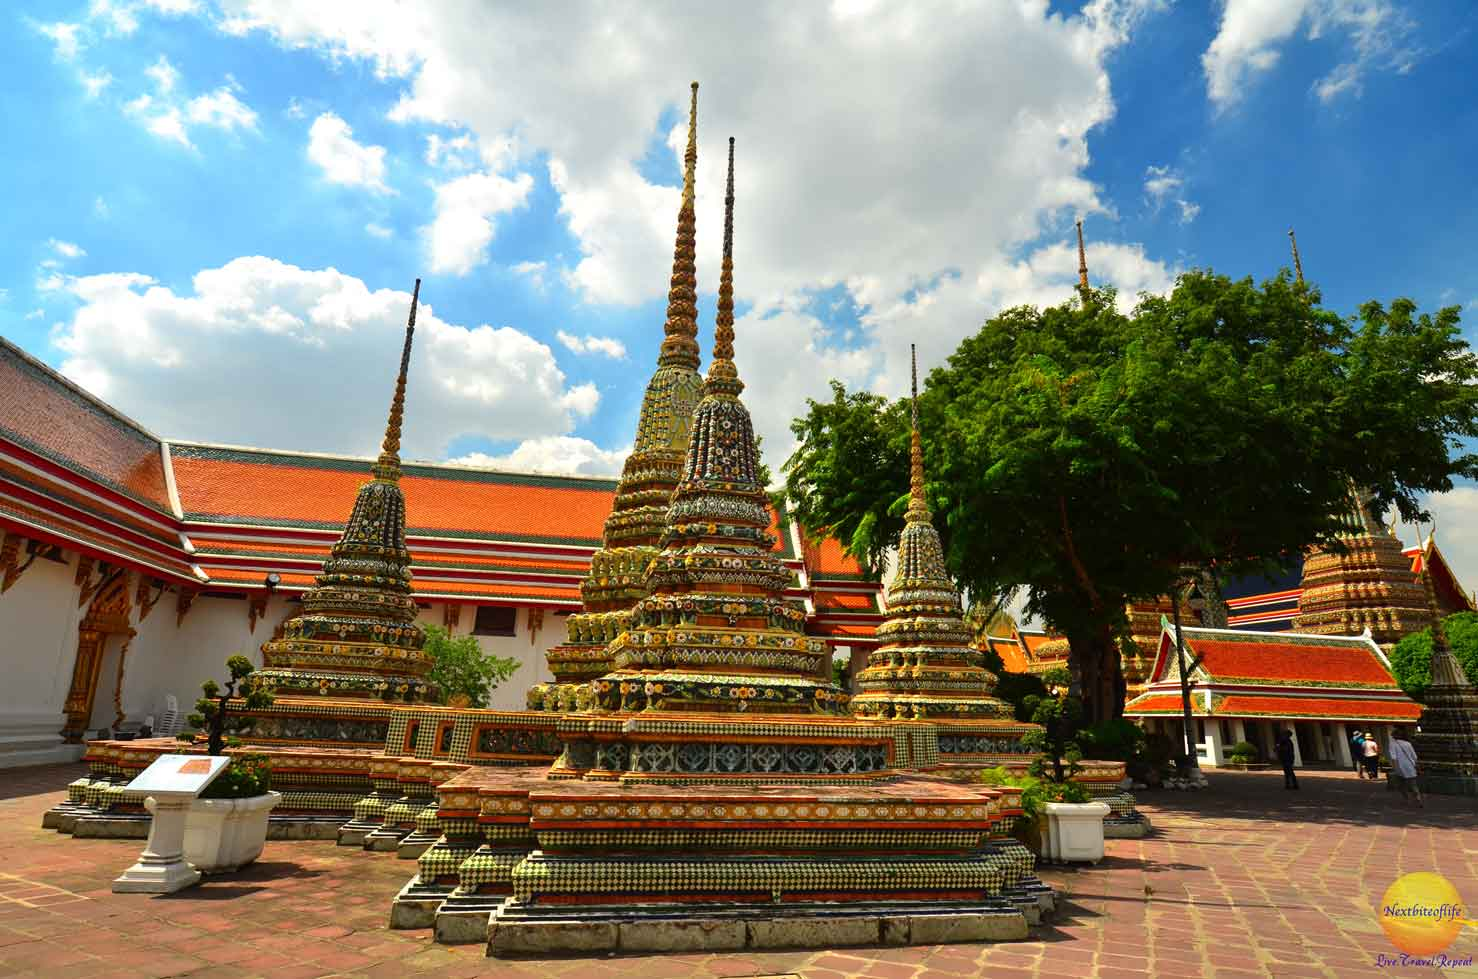 Excellent Visit to Wat Pho Temple in Bangkok. Plan on it - Nextbiteoflife